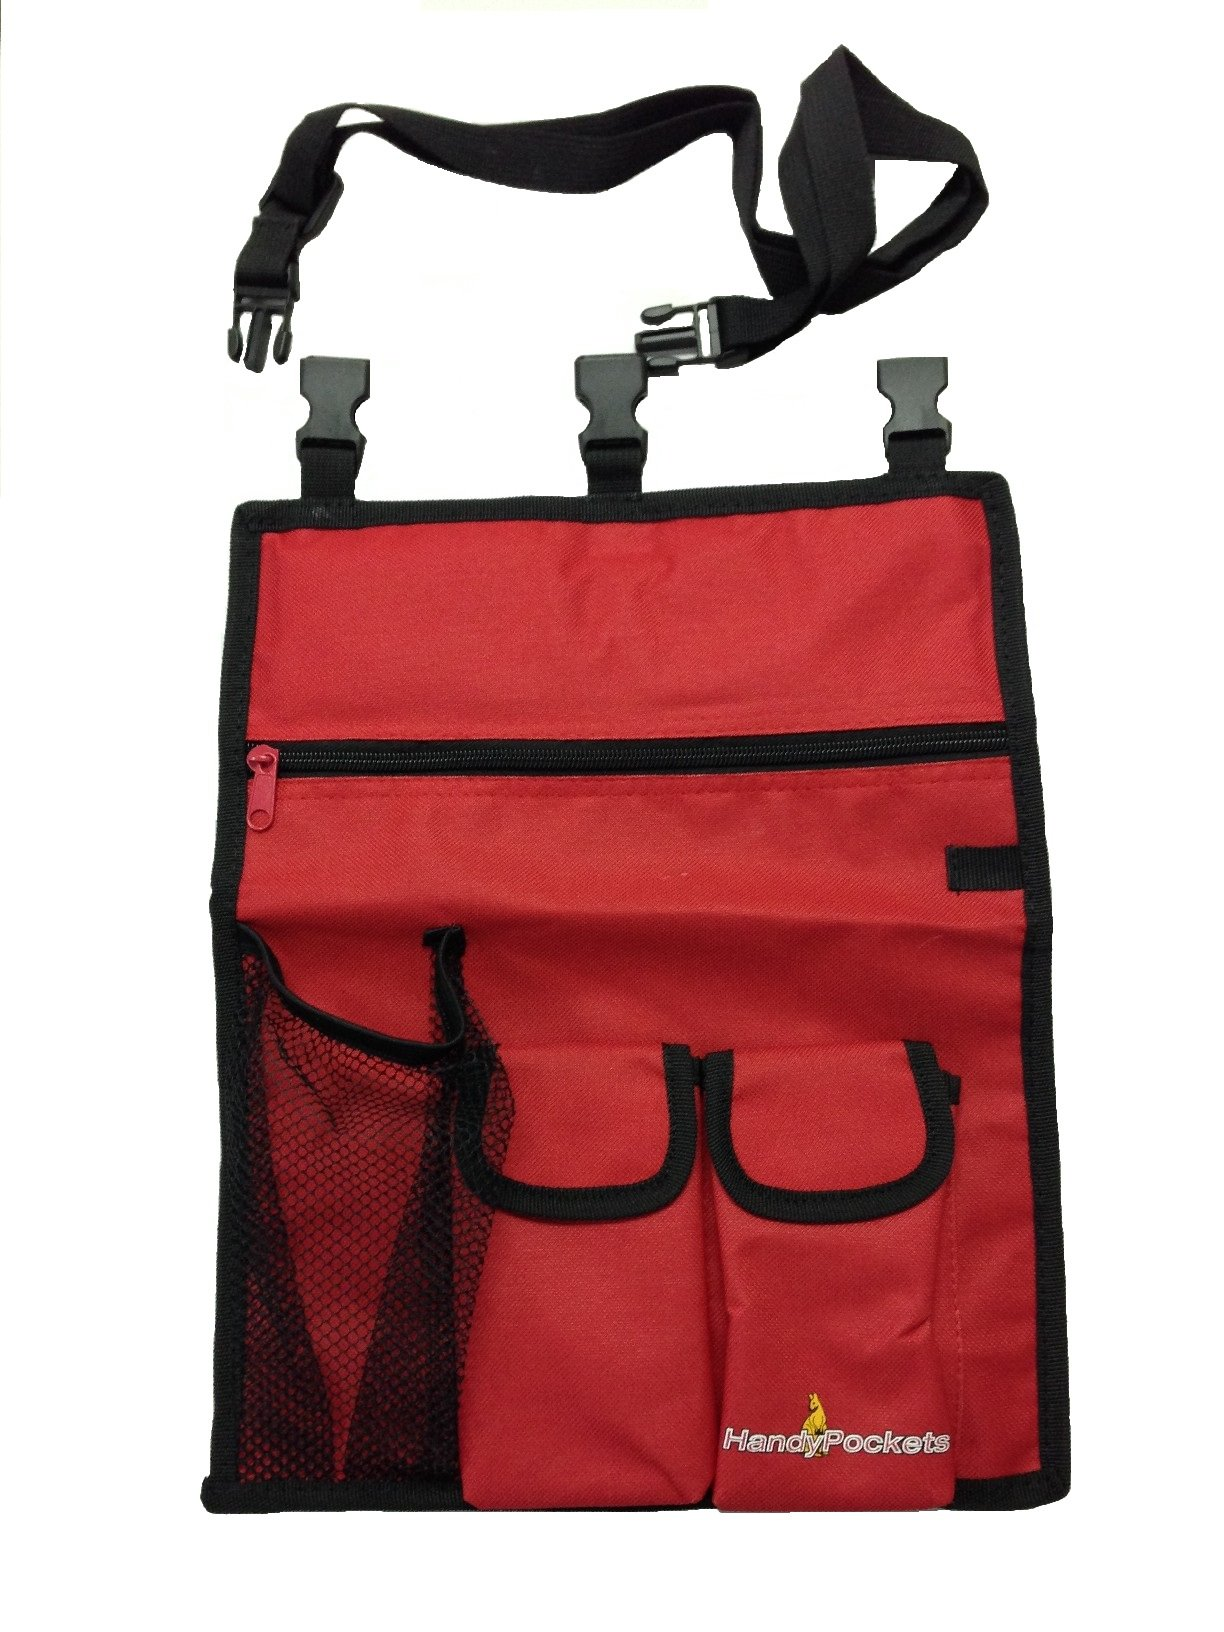 HandyPockets SidePocket Mobility Scooter Organizer and Tote Bag Red by HandyPockets